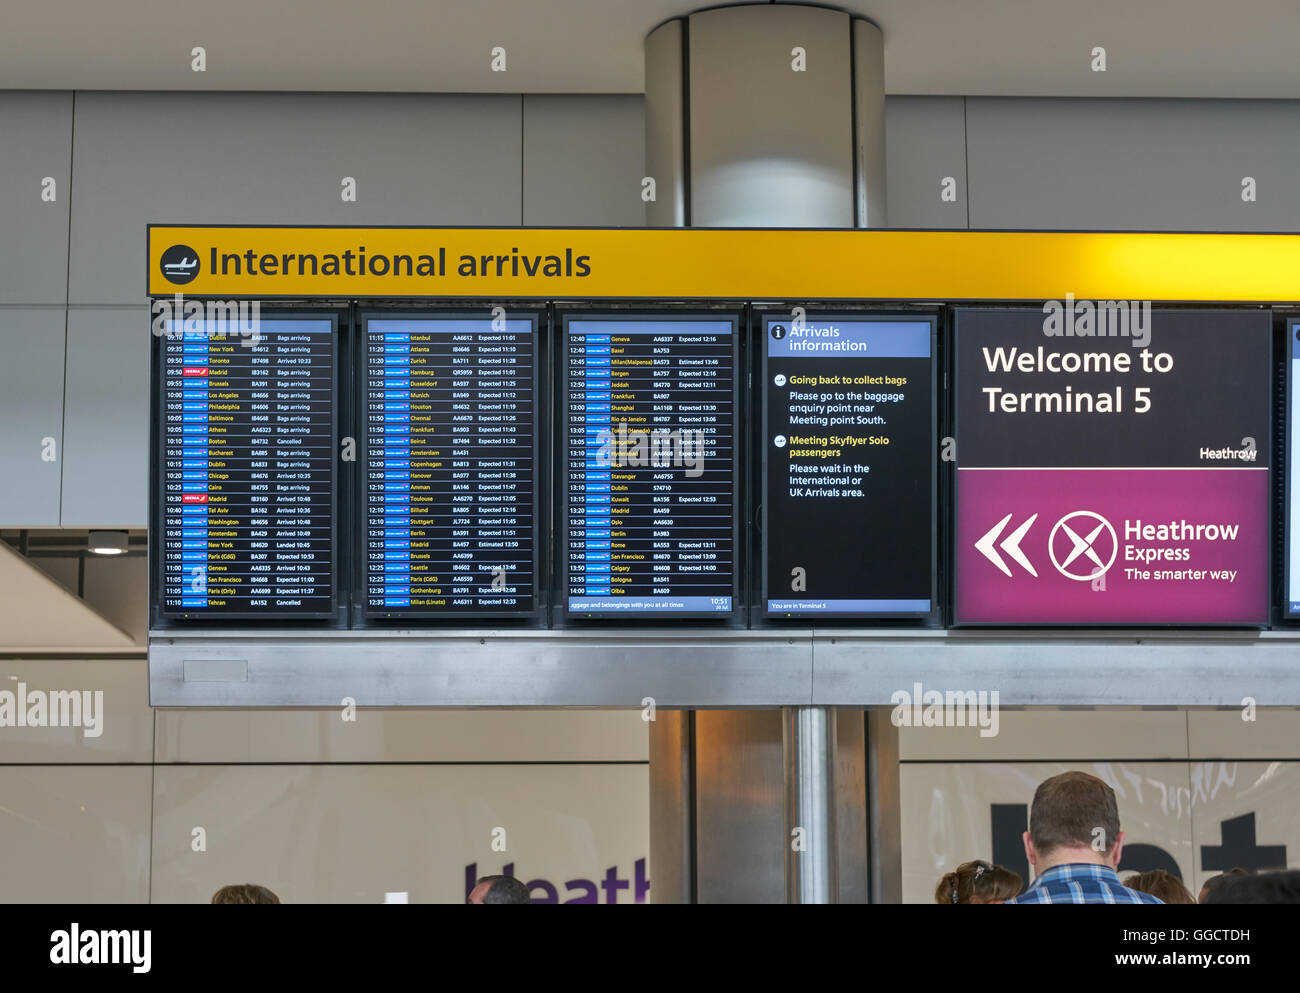 arrivals board at airport,  heathrow arrivals,  airplane arrivals terminal 5 - Stock Image